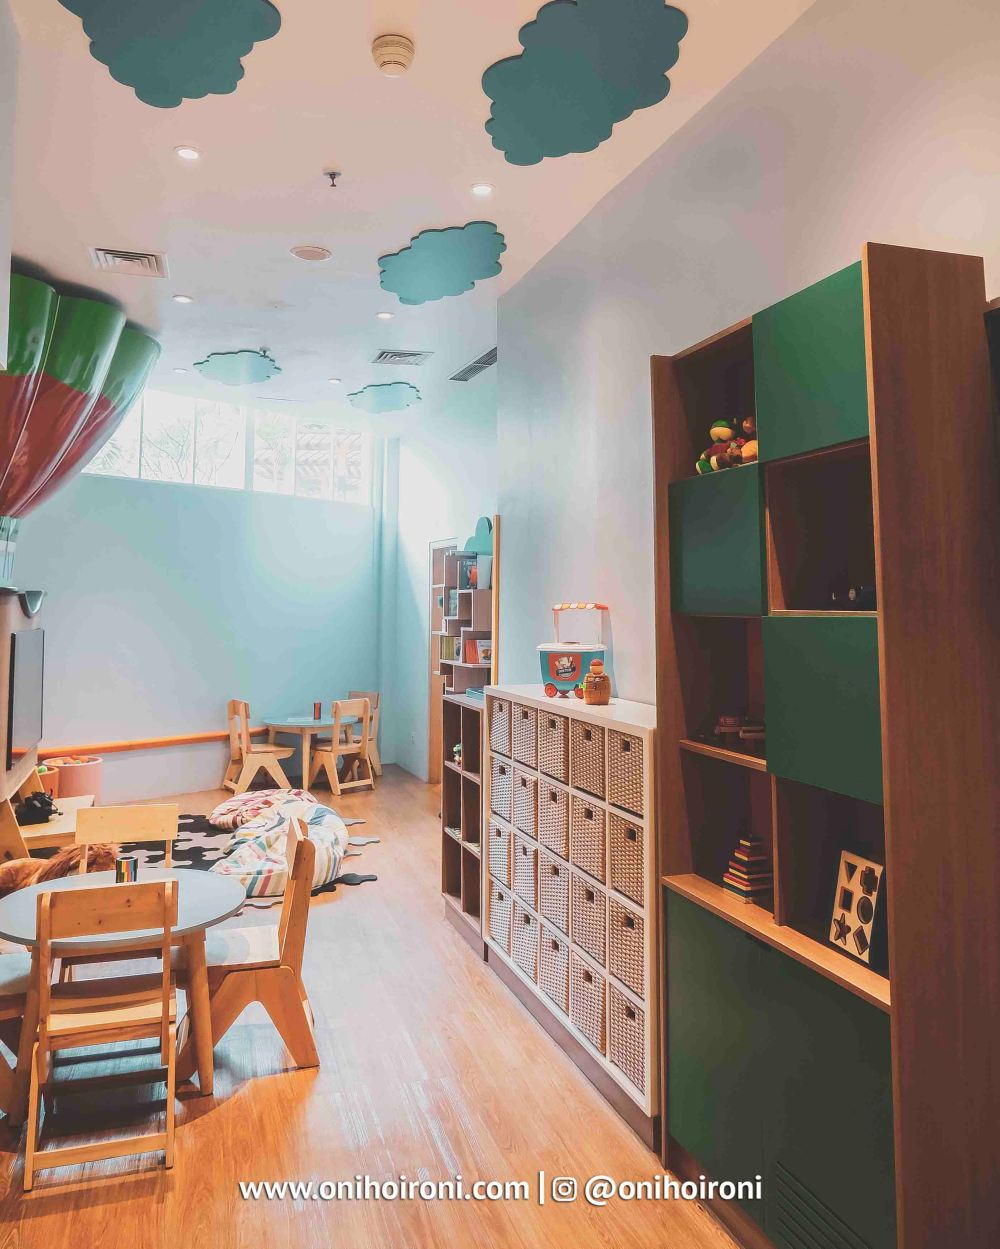 Kids Activity Courtyard Bandung oni hoironi.jpg